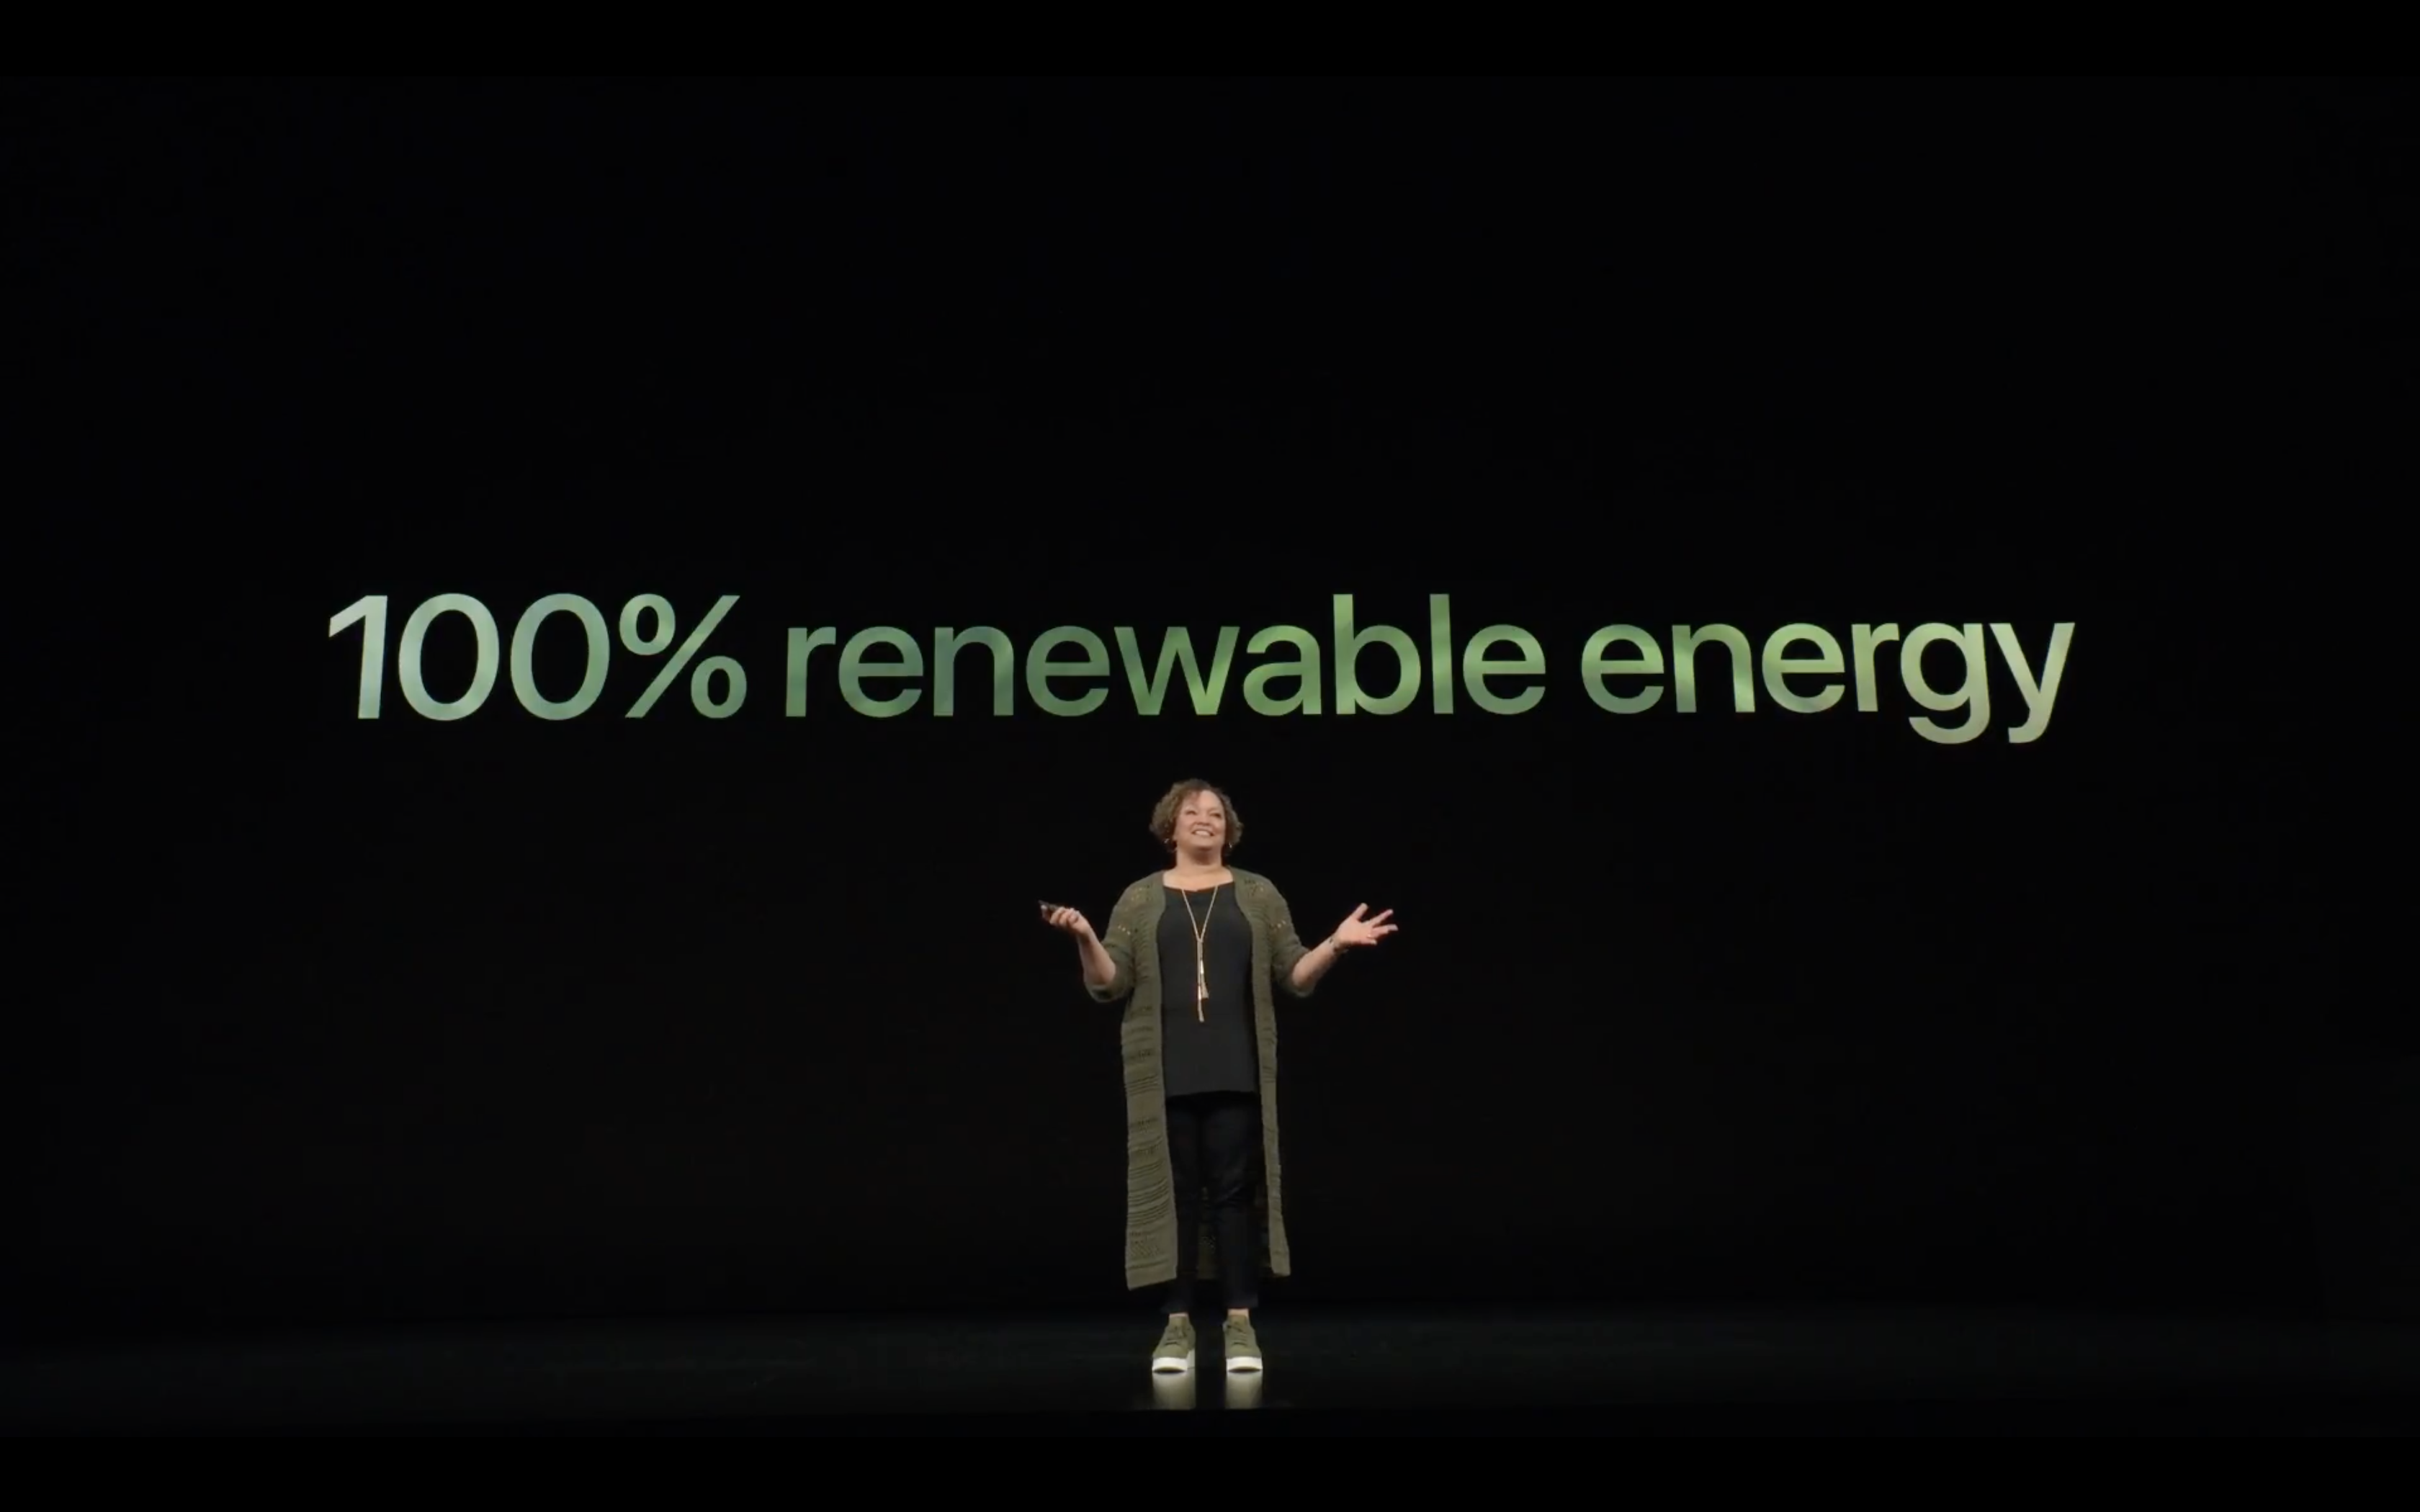 https://www.macfreak.nl/modules/news/images/zArt.LisaJacksonHundredPercentRenewableEnergy.png